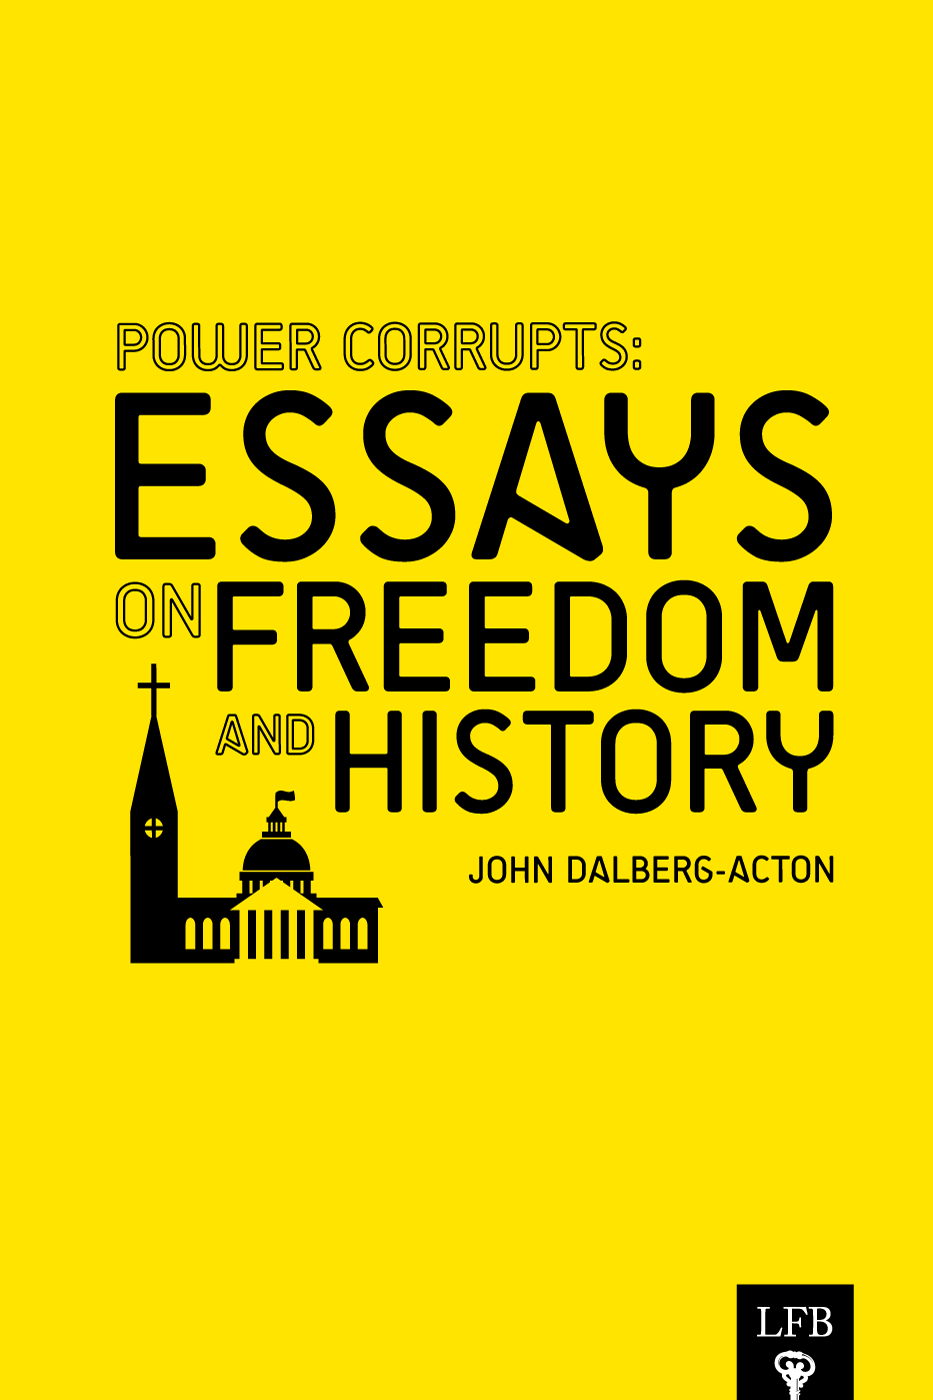 ebook covers andre cawley power corrupts essays on dom and history john dalberg acton 2013 nbsp laissez